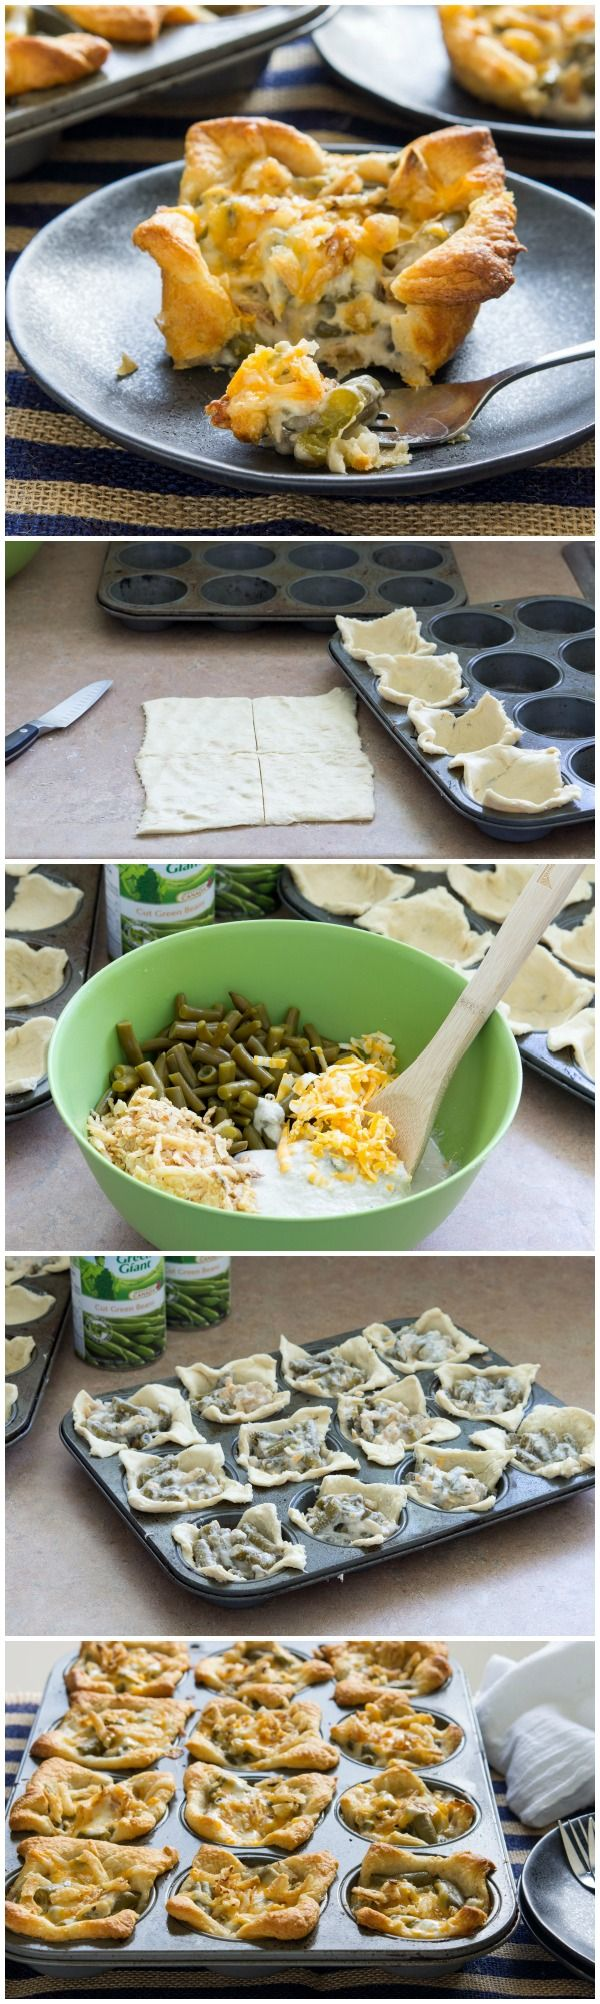 Thanksgiving dish makeover: 30-min Green Bean Casserole Crescent Cups!